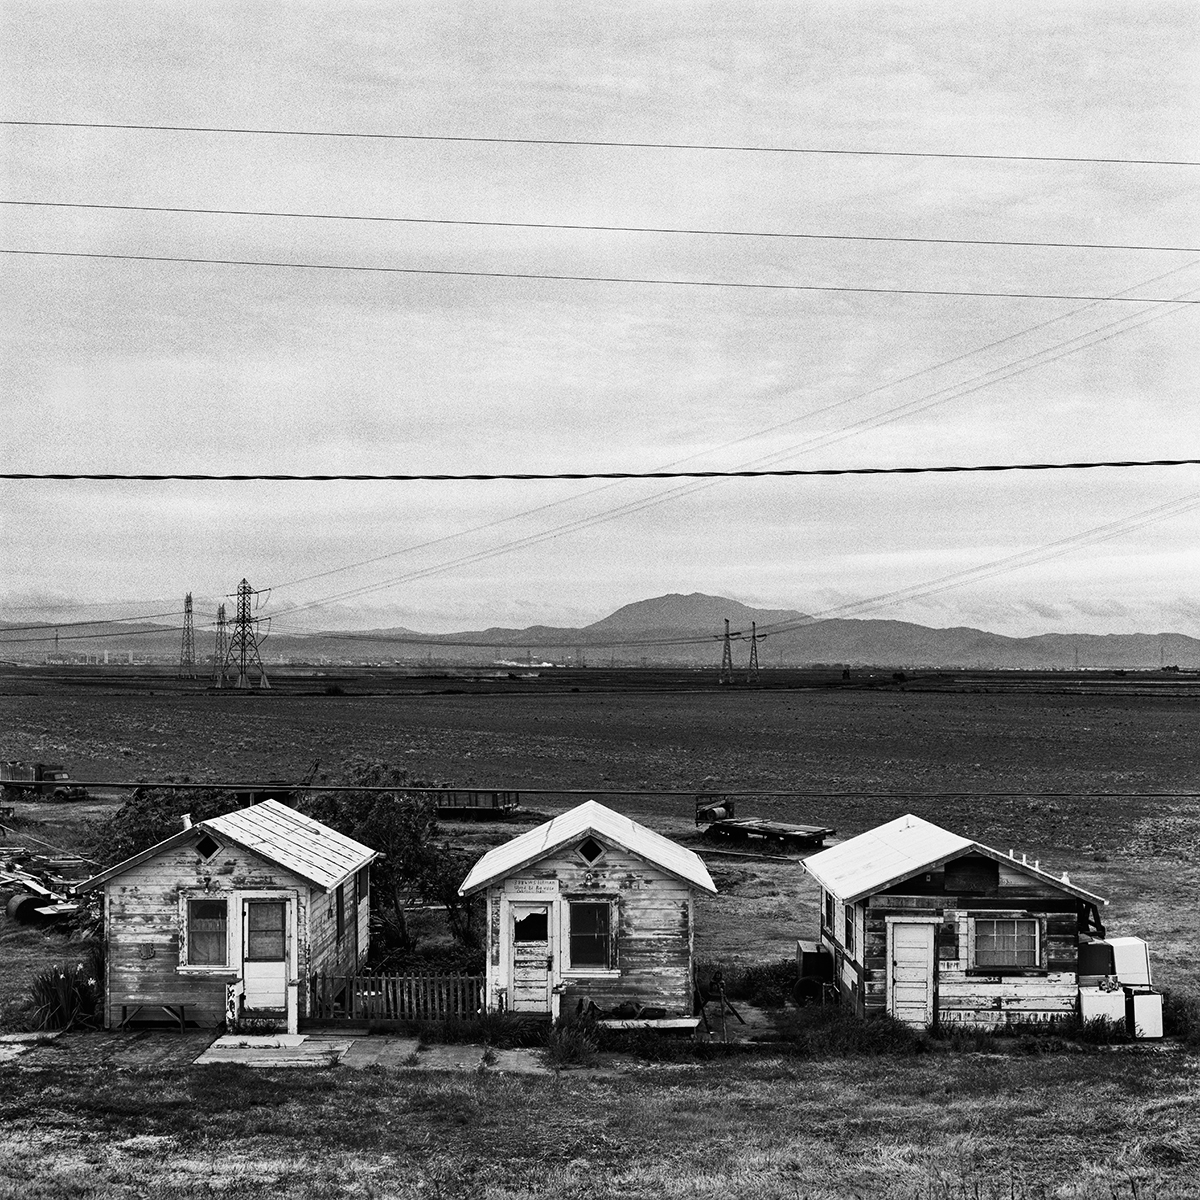 Three Farmworker Cabins, 1969